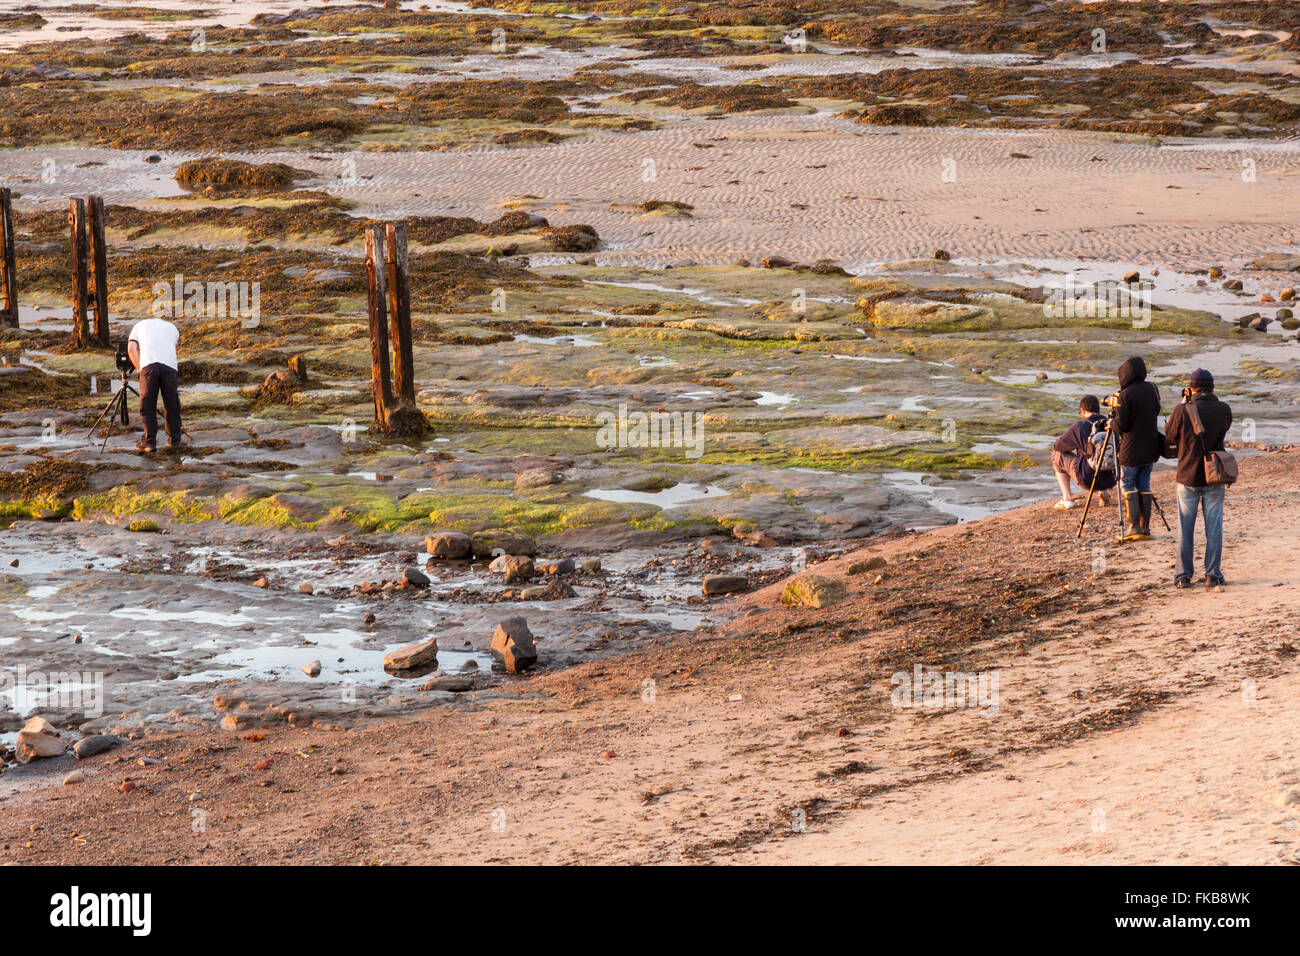 Photographers on the Rocks at St Mary's Island in the low evening warm light, Whitley Bay, Tyne and Wear, UK - Stock Image